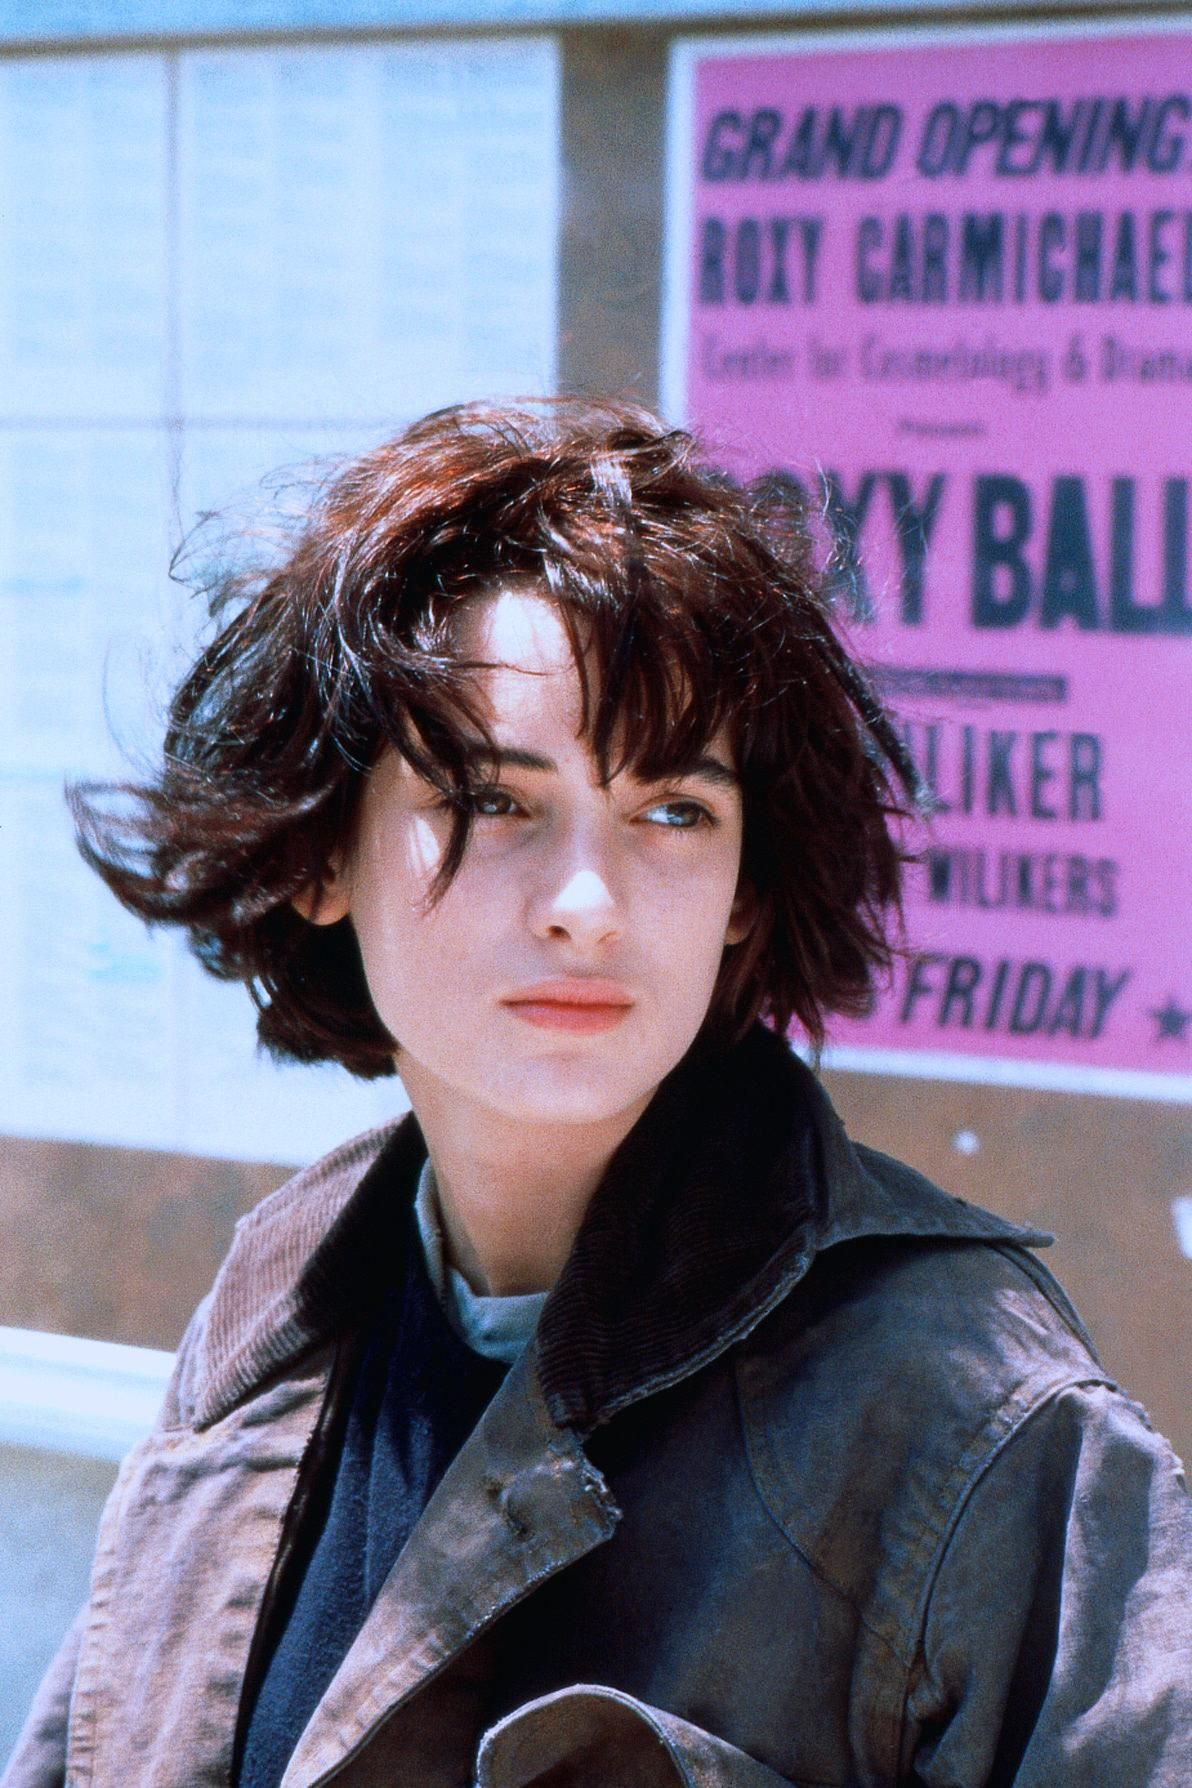 pin by kericassie on hair blair bunch | winona ryder, 90s